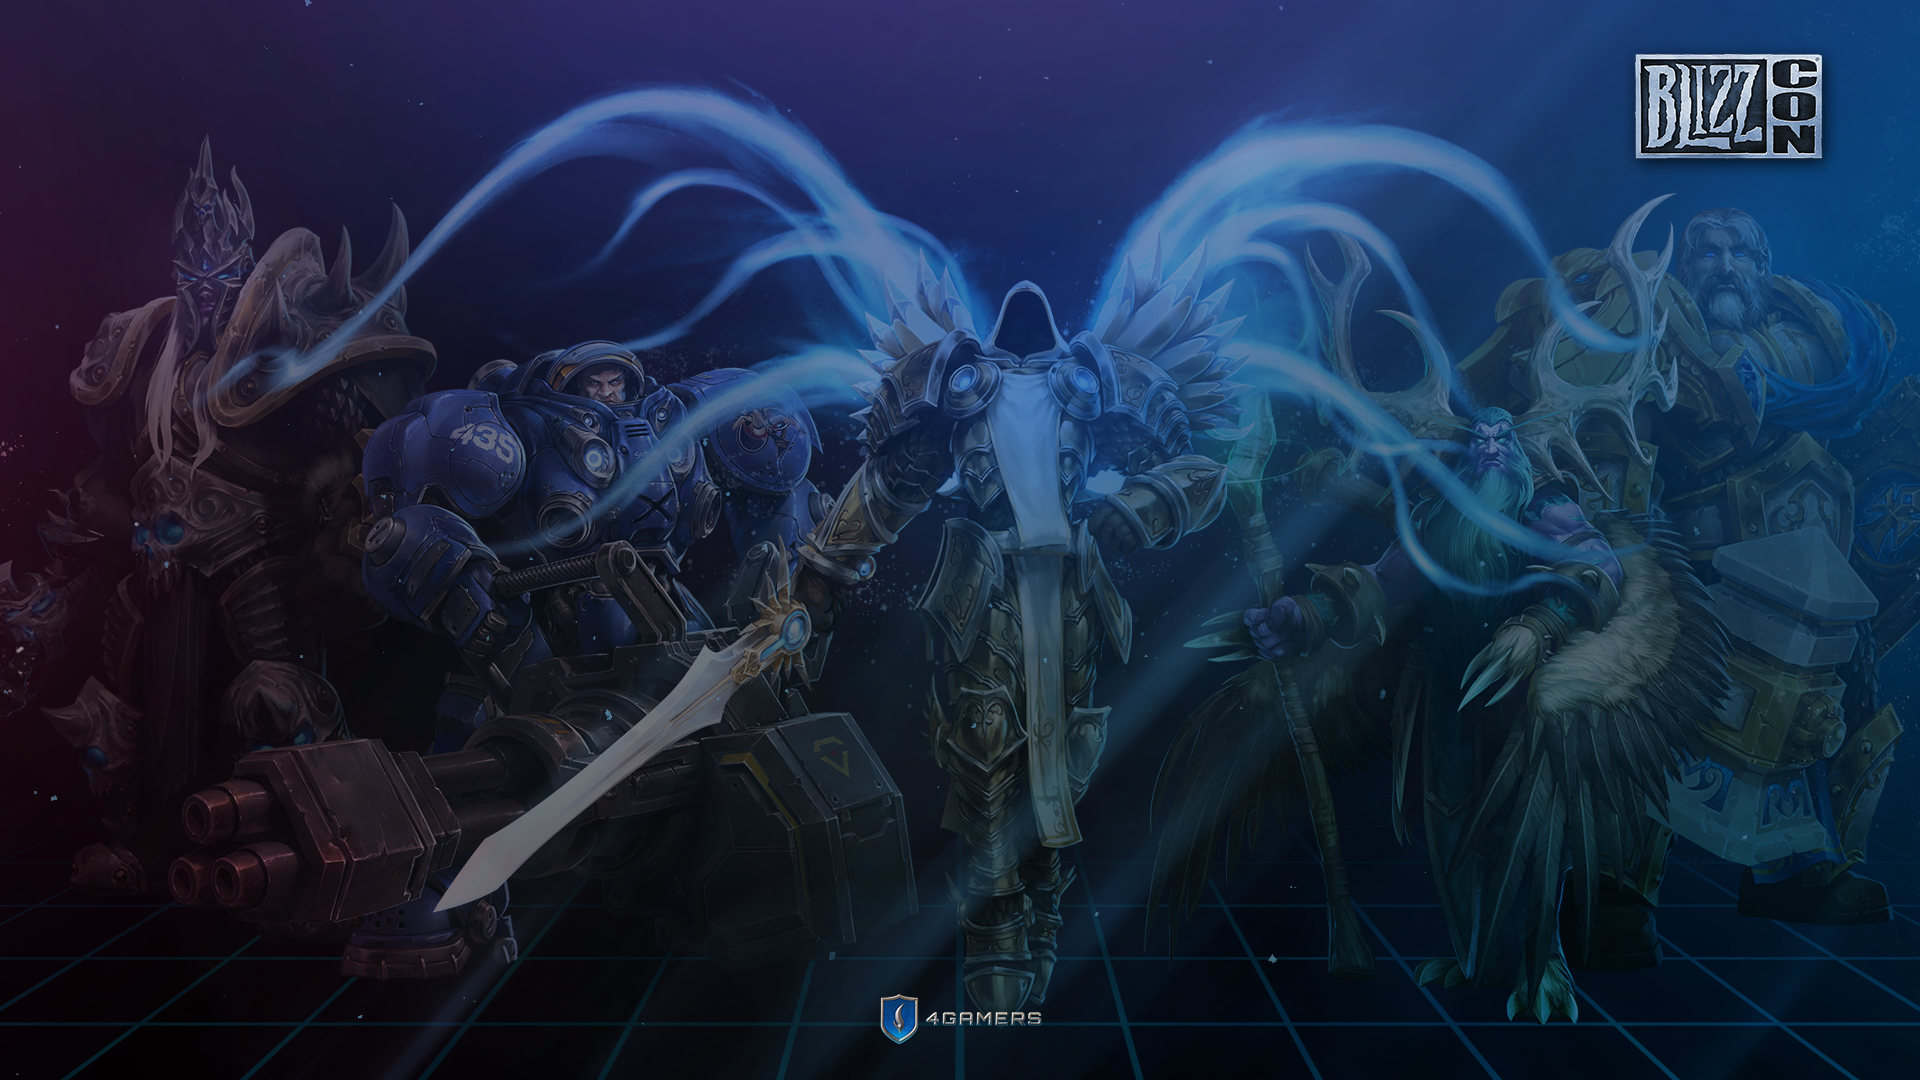 Heroes Blizzard Entertainment Wallpapers 38 Heroes 1920x1080